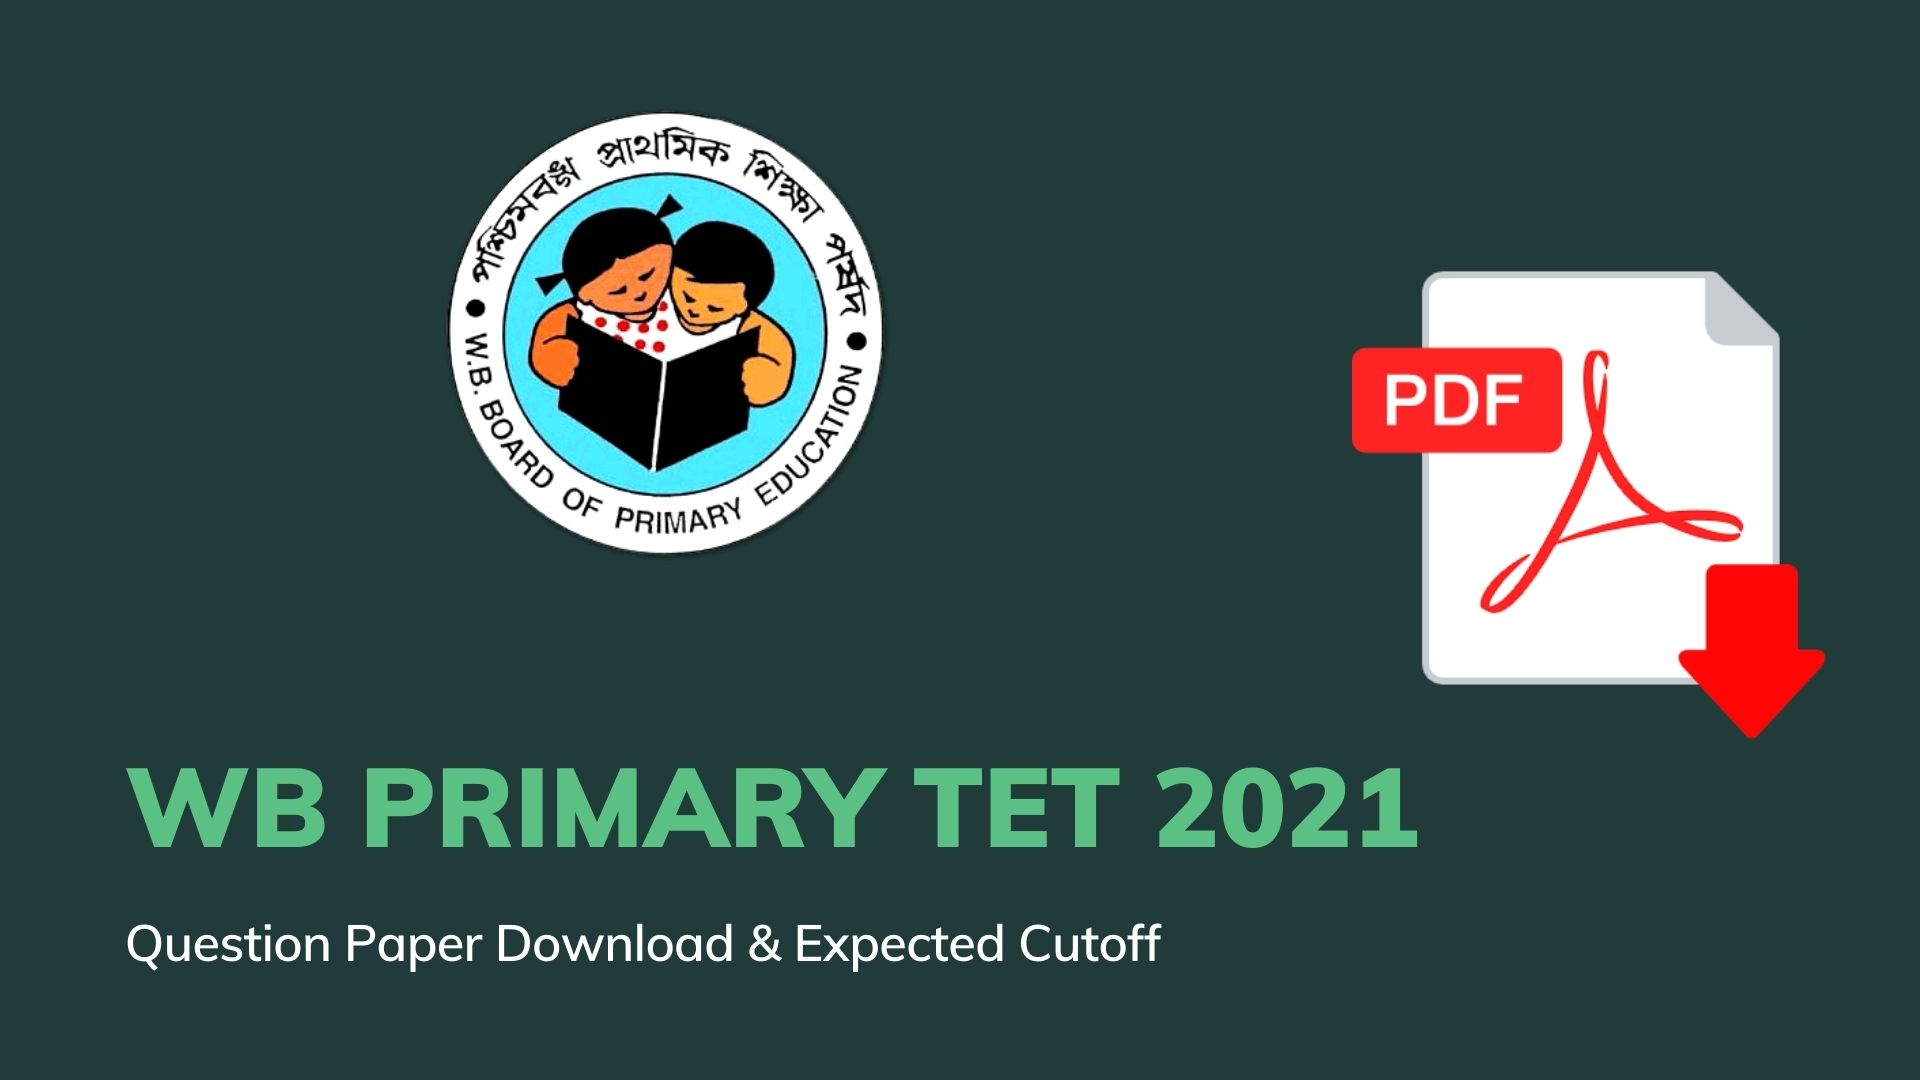 WB Primary TET 2021 Question Paper Result